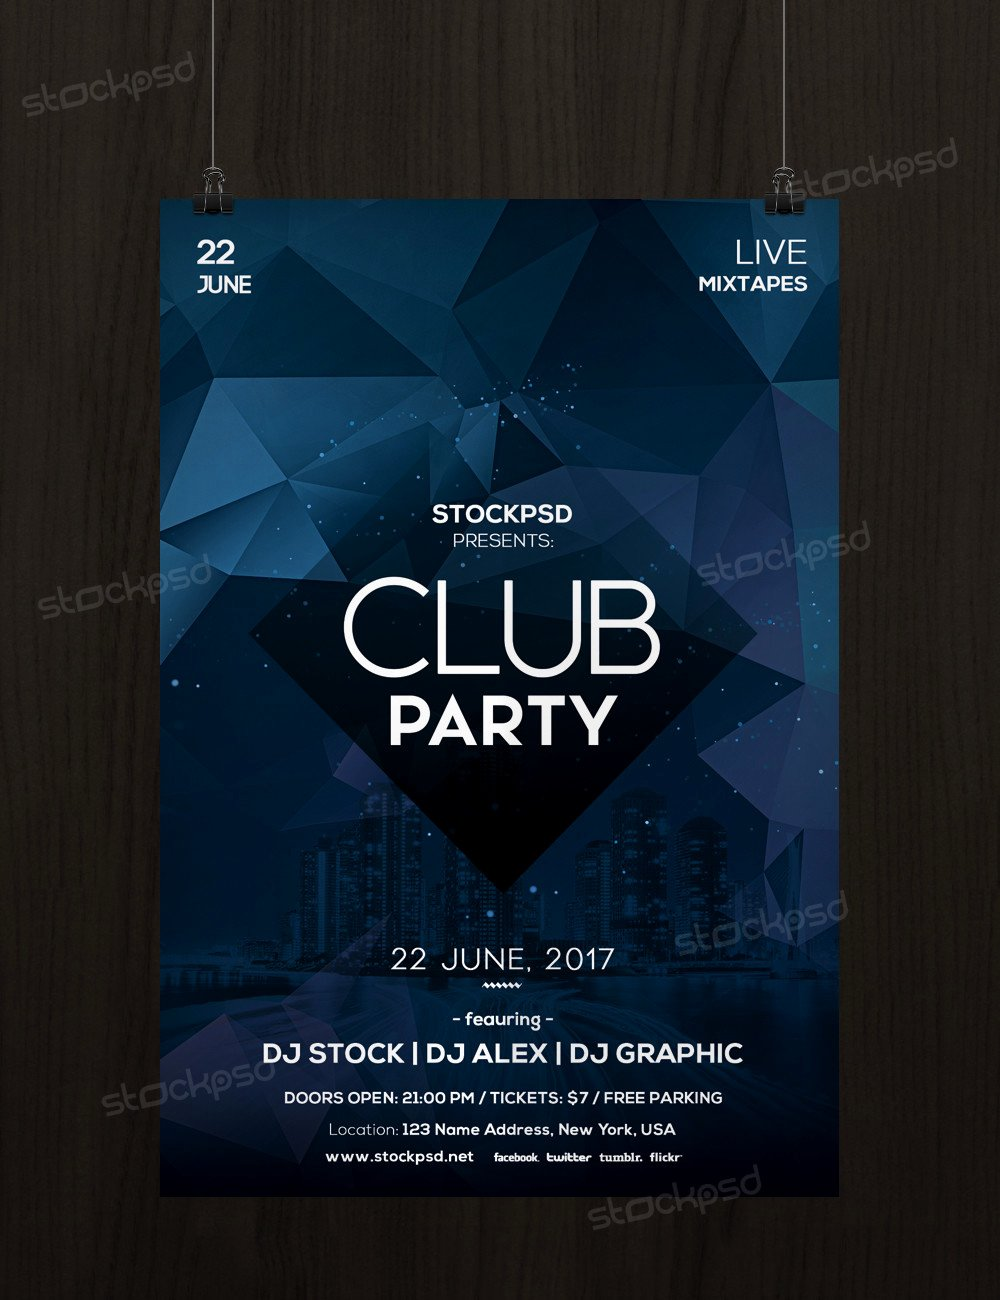 Free Nightclub Flyer Templates New Club Party Free Minimal Psd Flyer Template Free Psd Flyer Templates Brochures Mockup & More